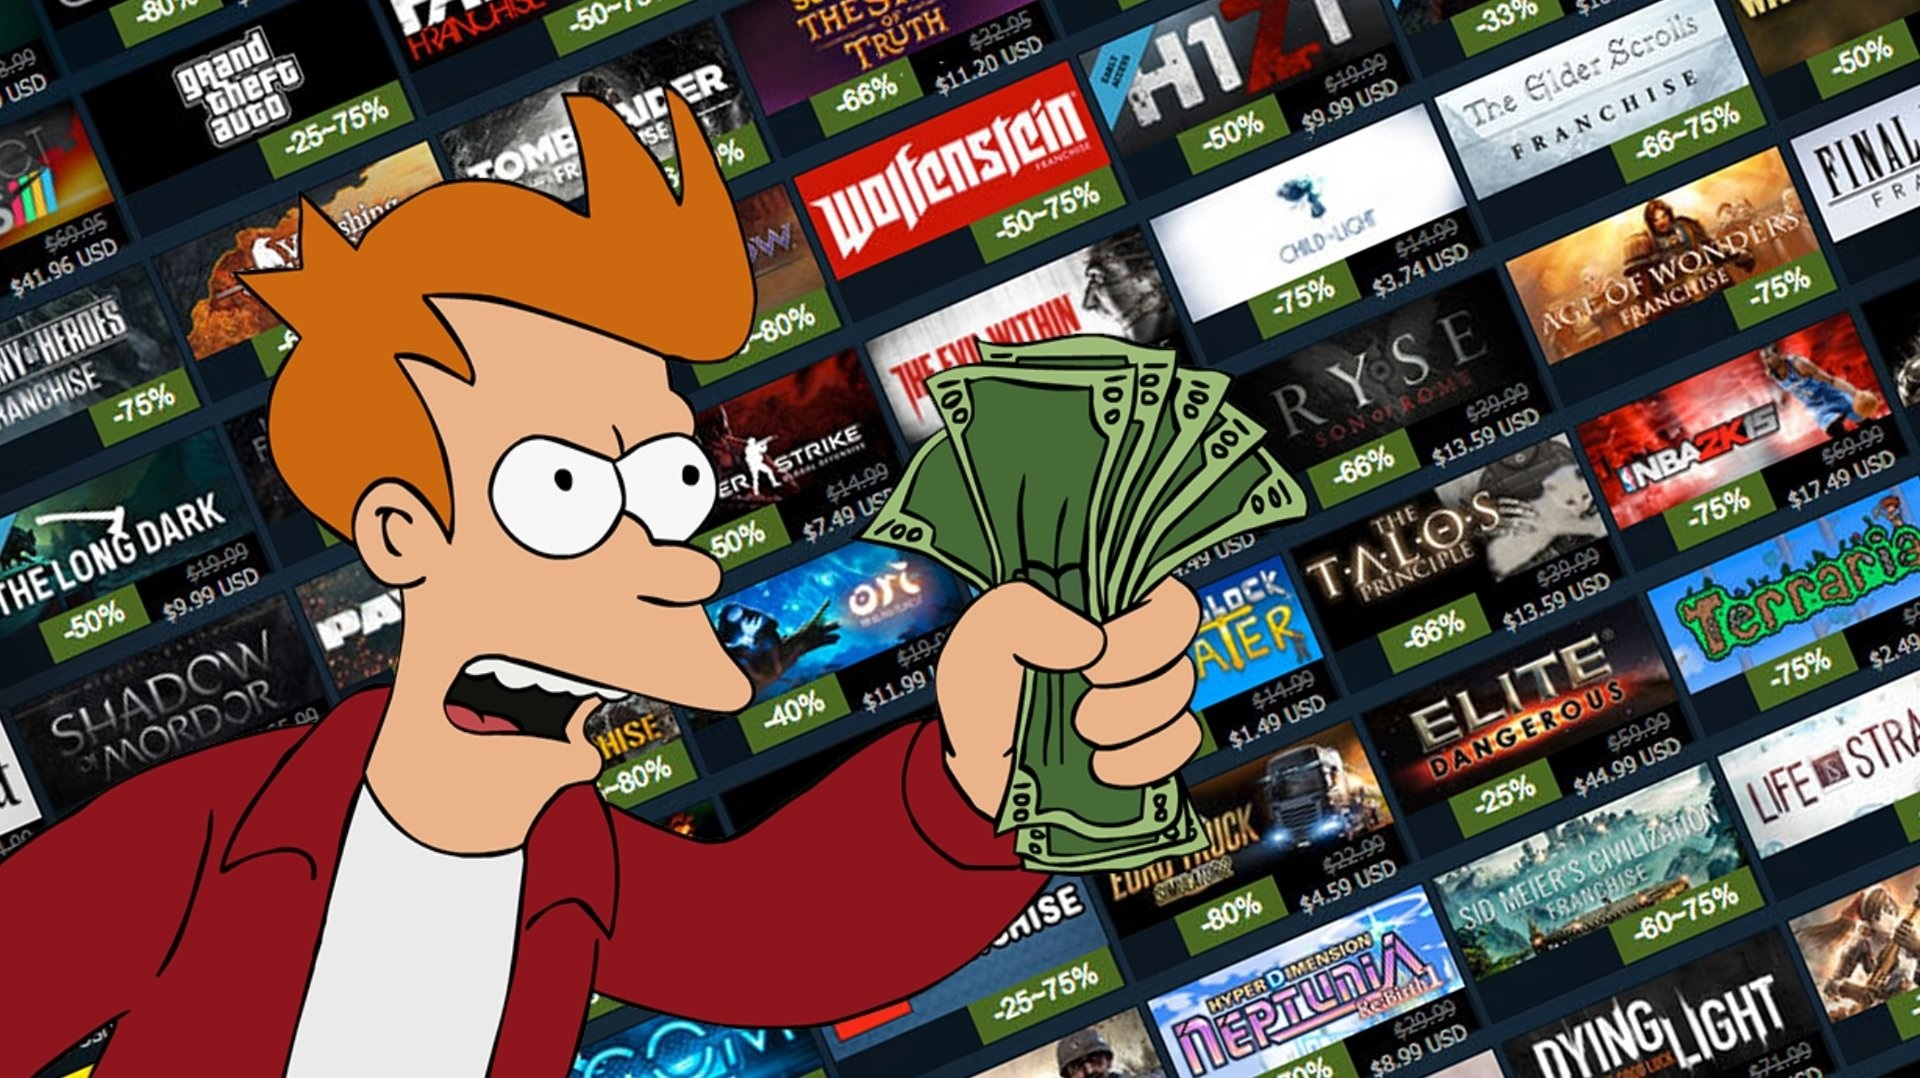 Say goodbye to your wallet, because the Steam Summer Sale has just started screenshot